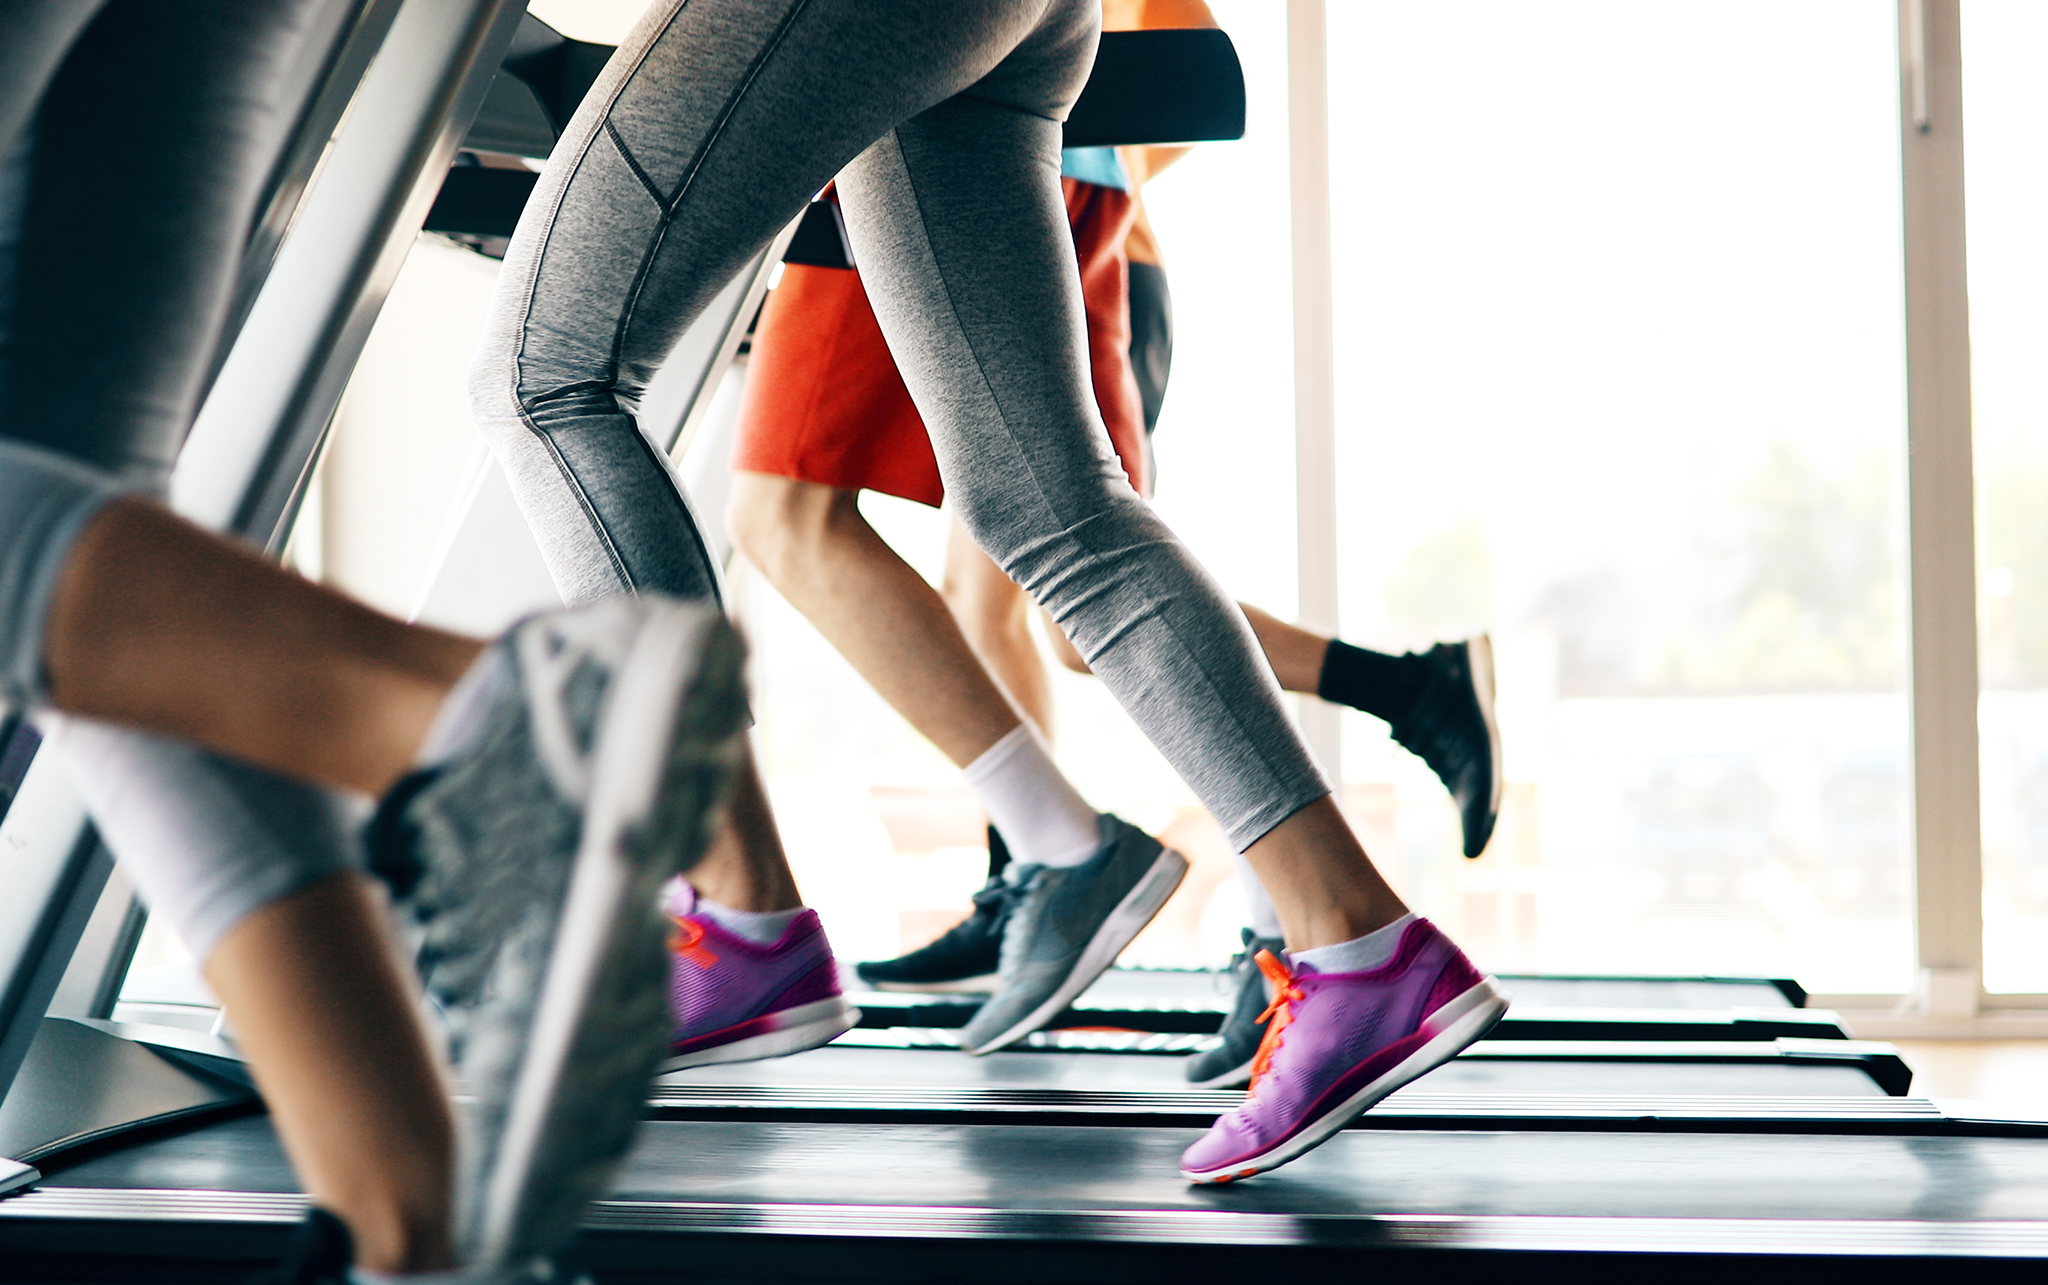 legs on treadmill